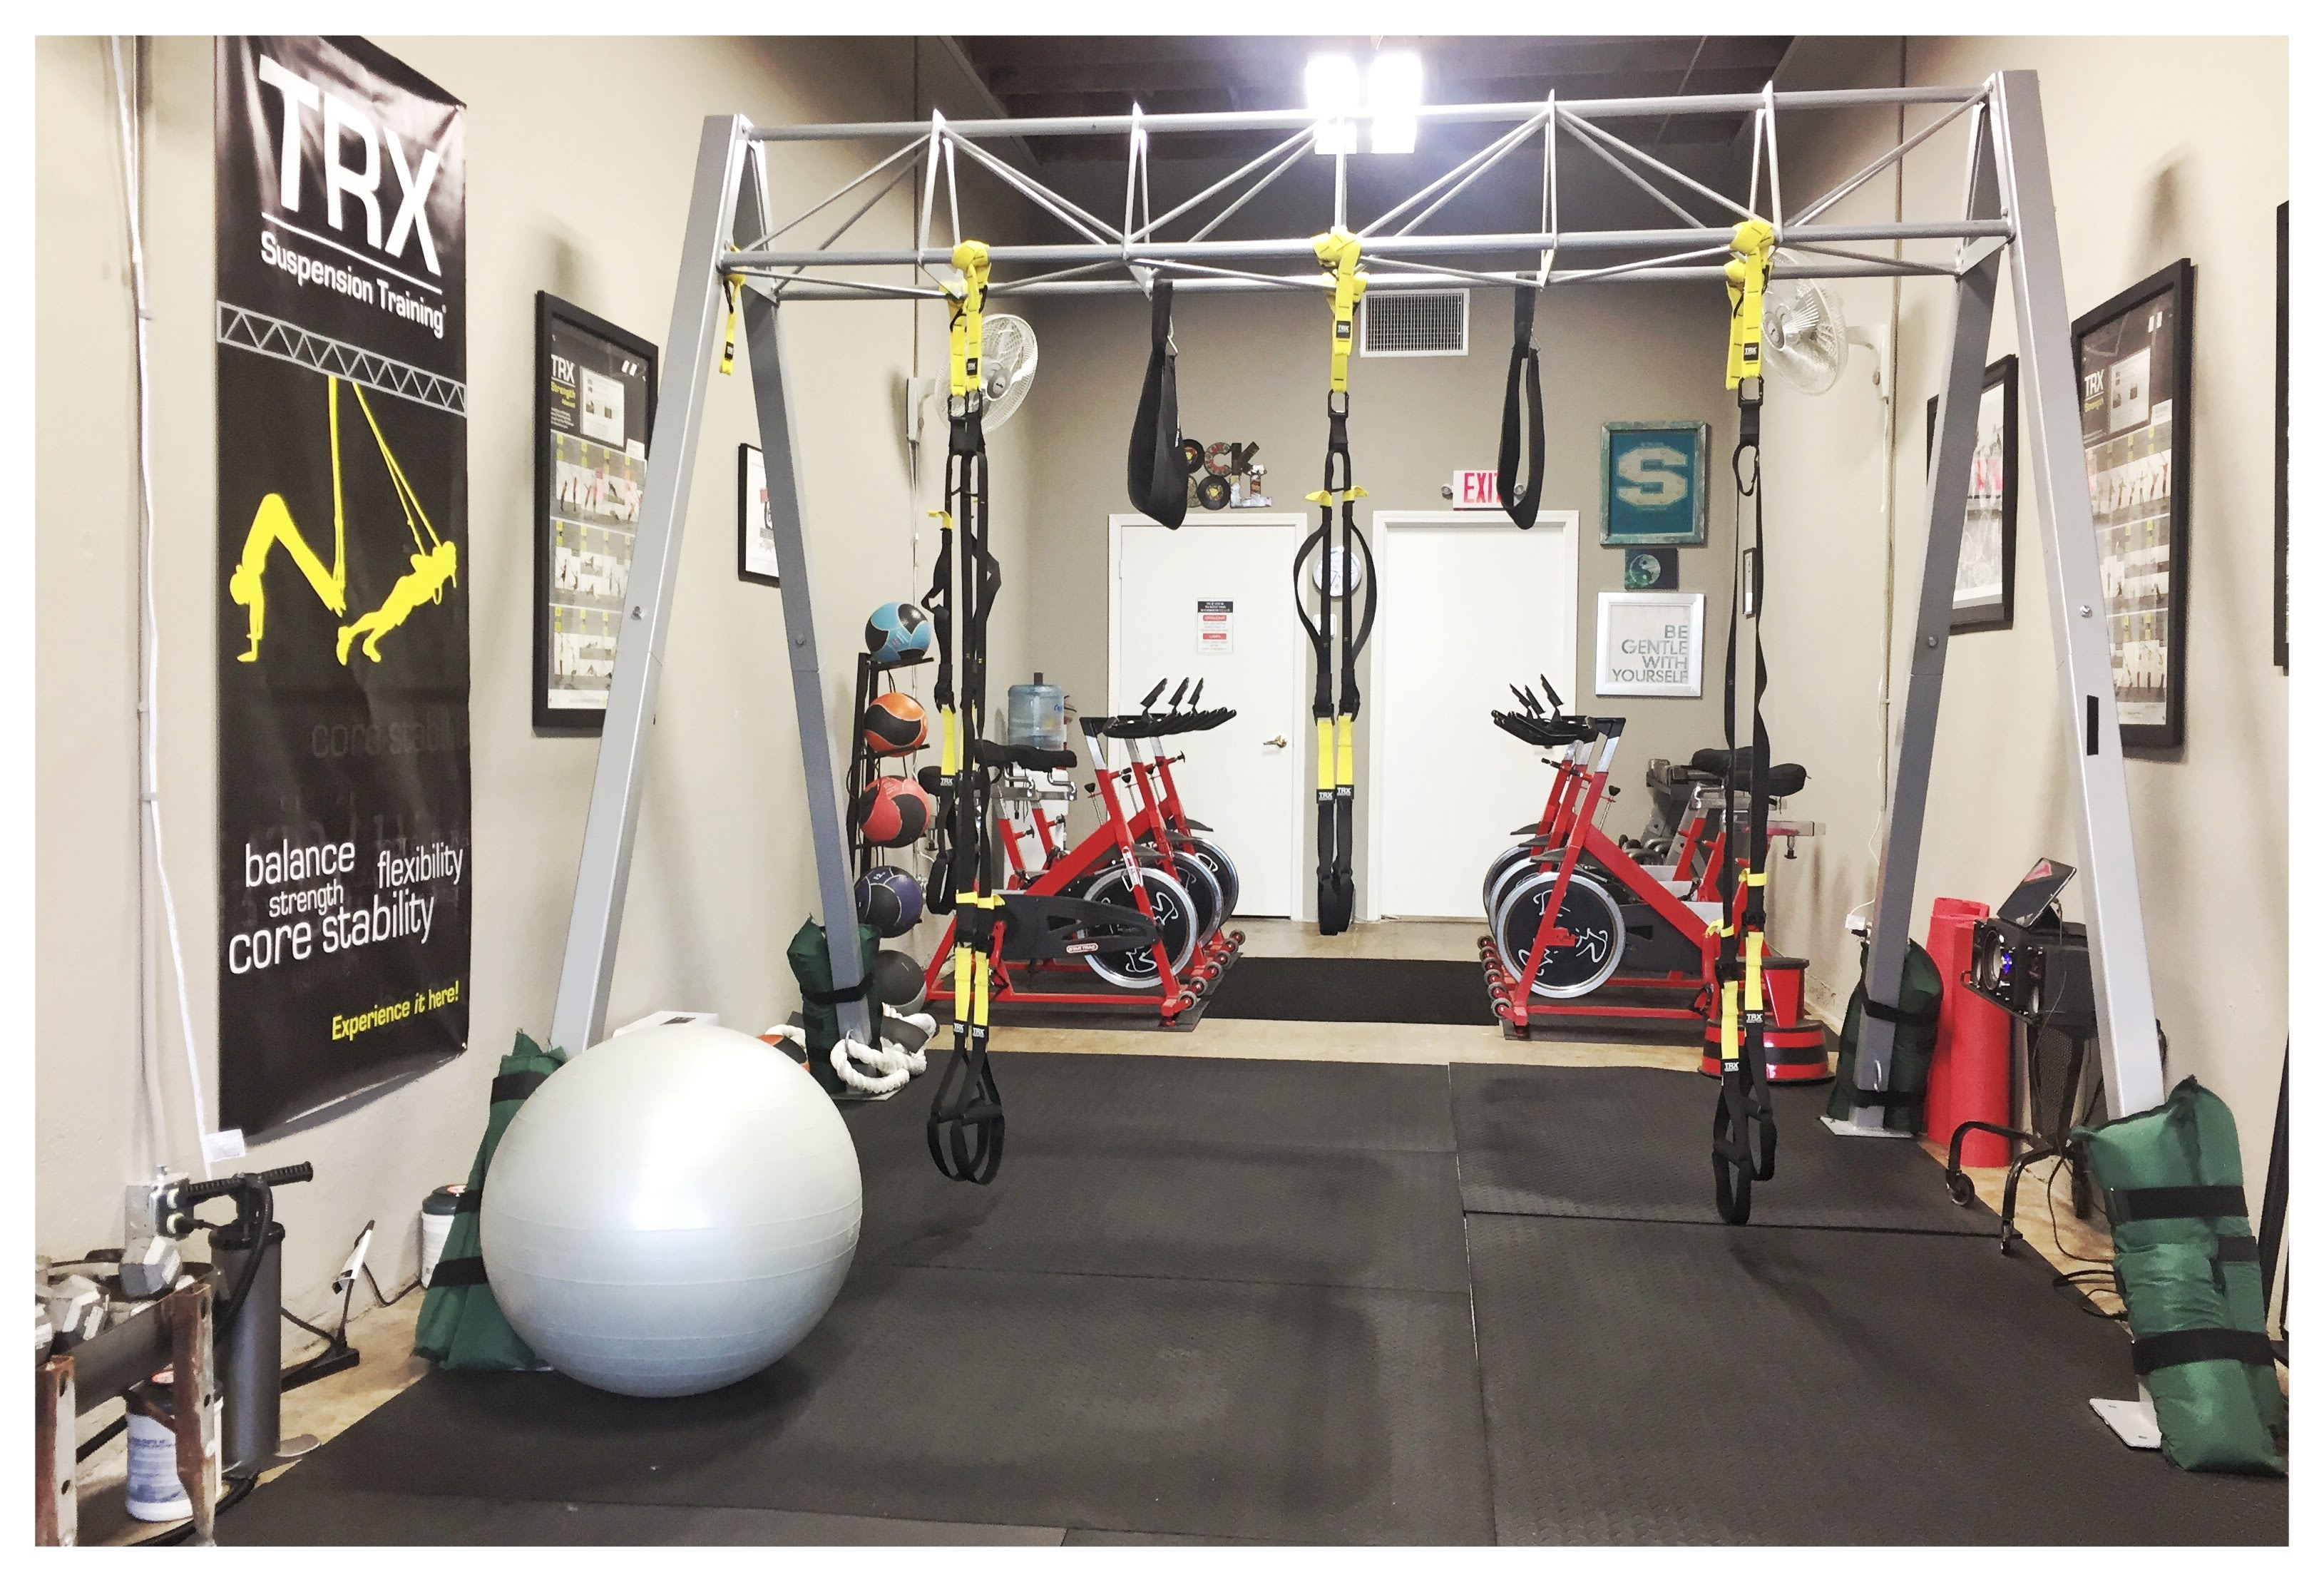 tiny house fitness llc workouts with a personal touch rh abbyschonierfitness com tiny house home gym tiny house gumtree